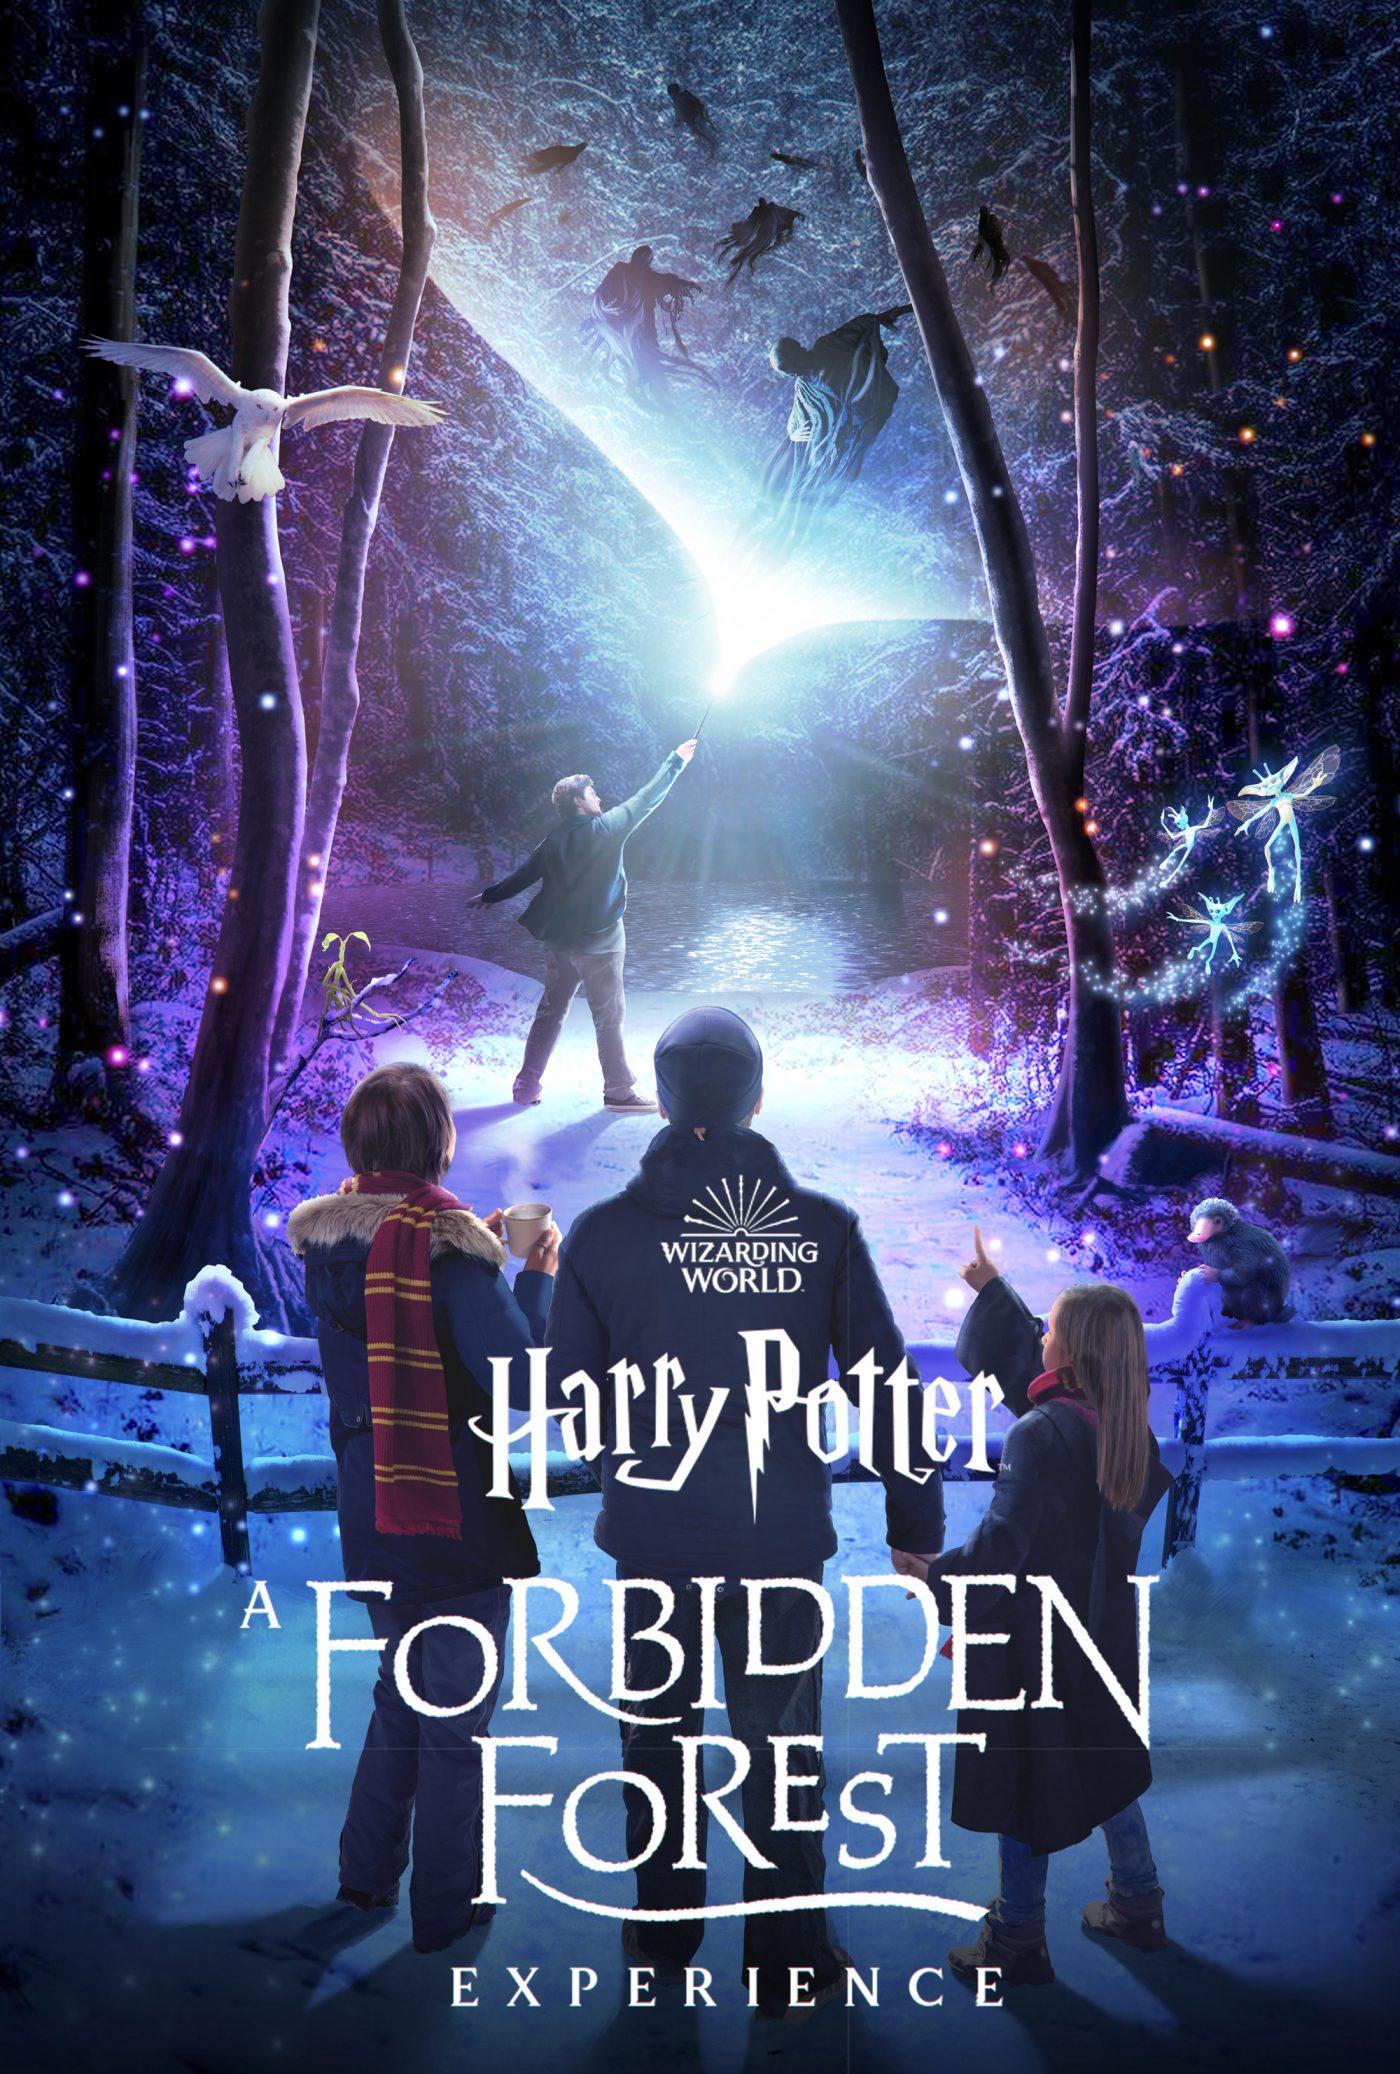 forbidden-forest-experience-cheshire-key-art-full-poster